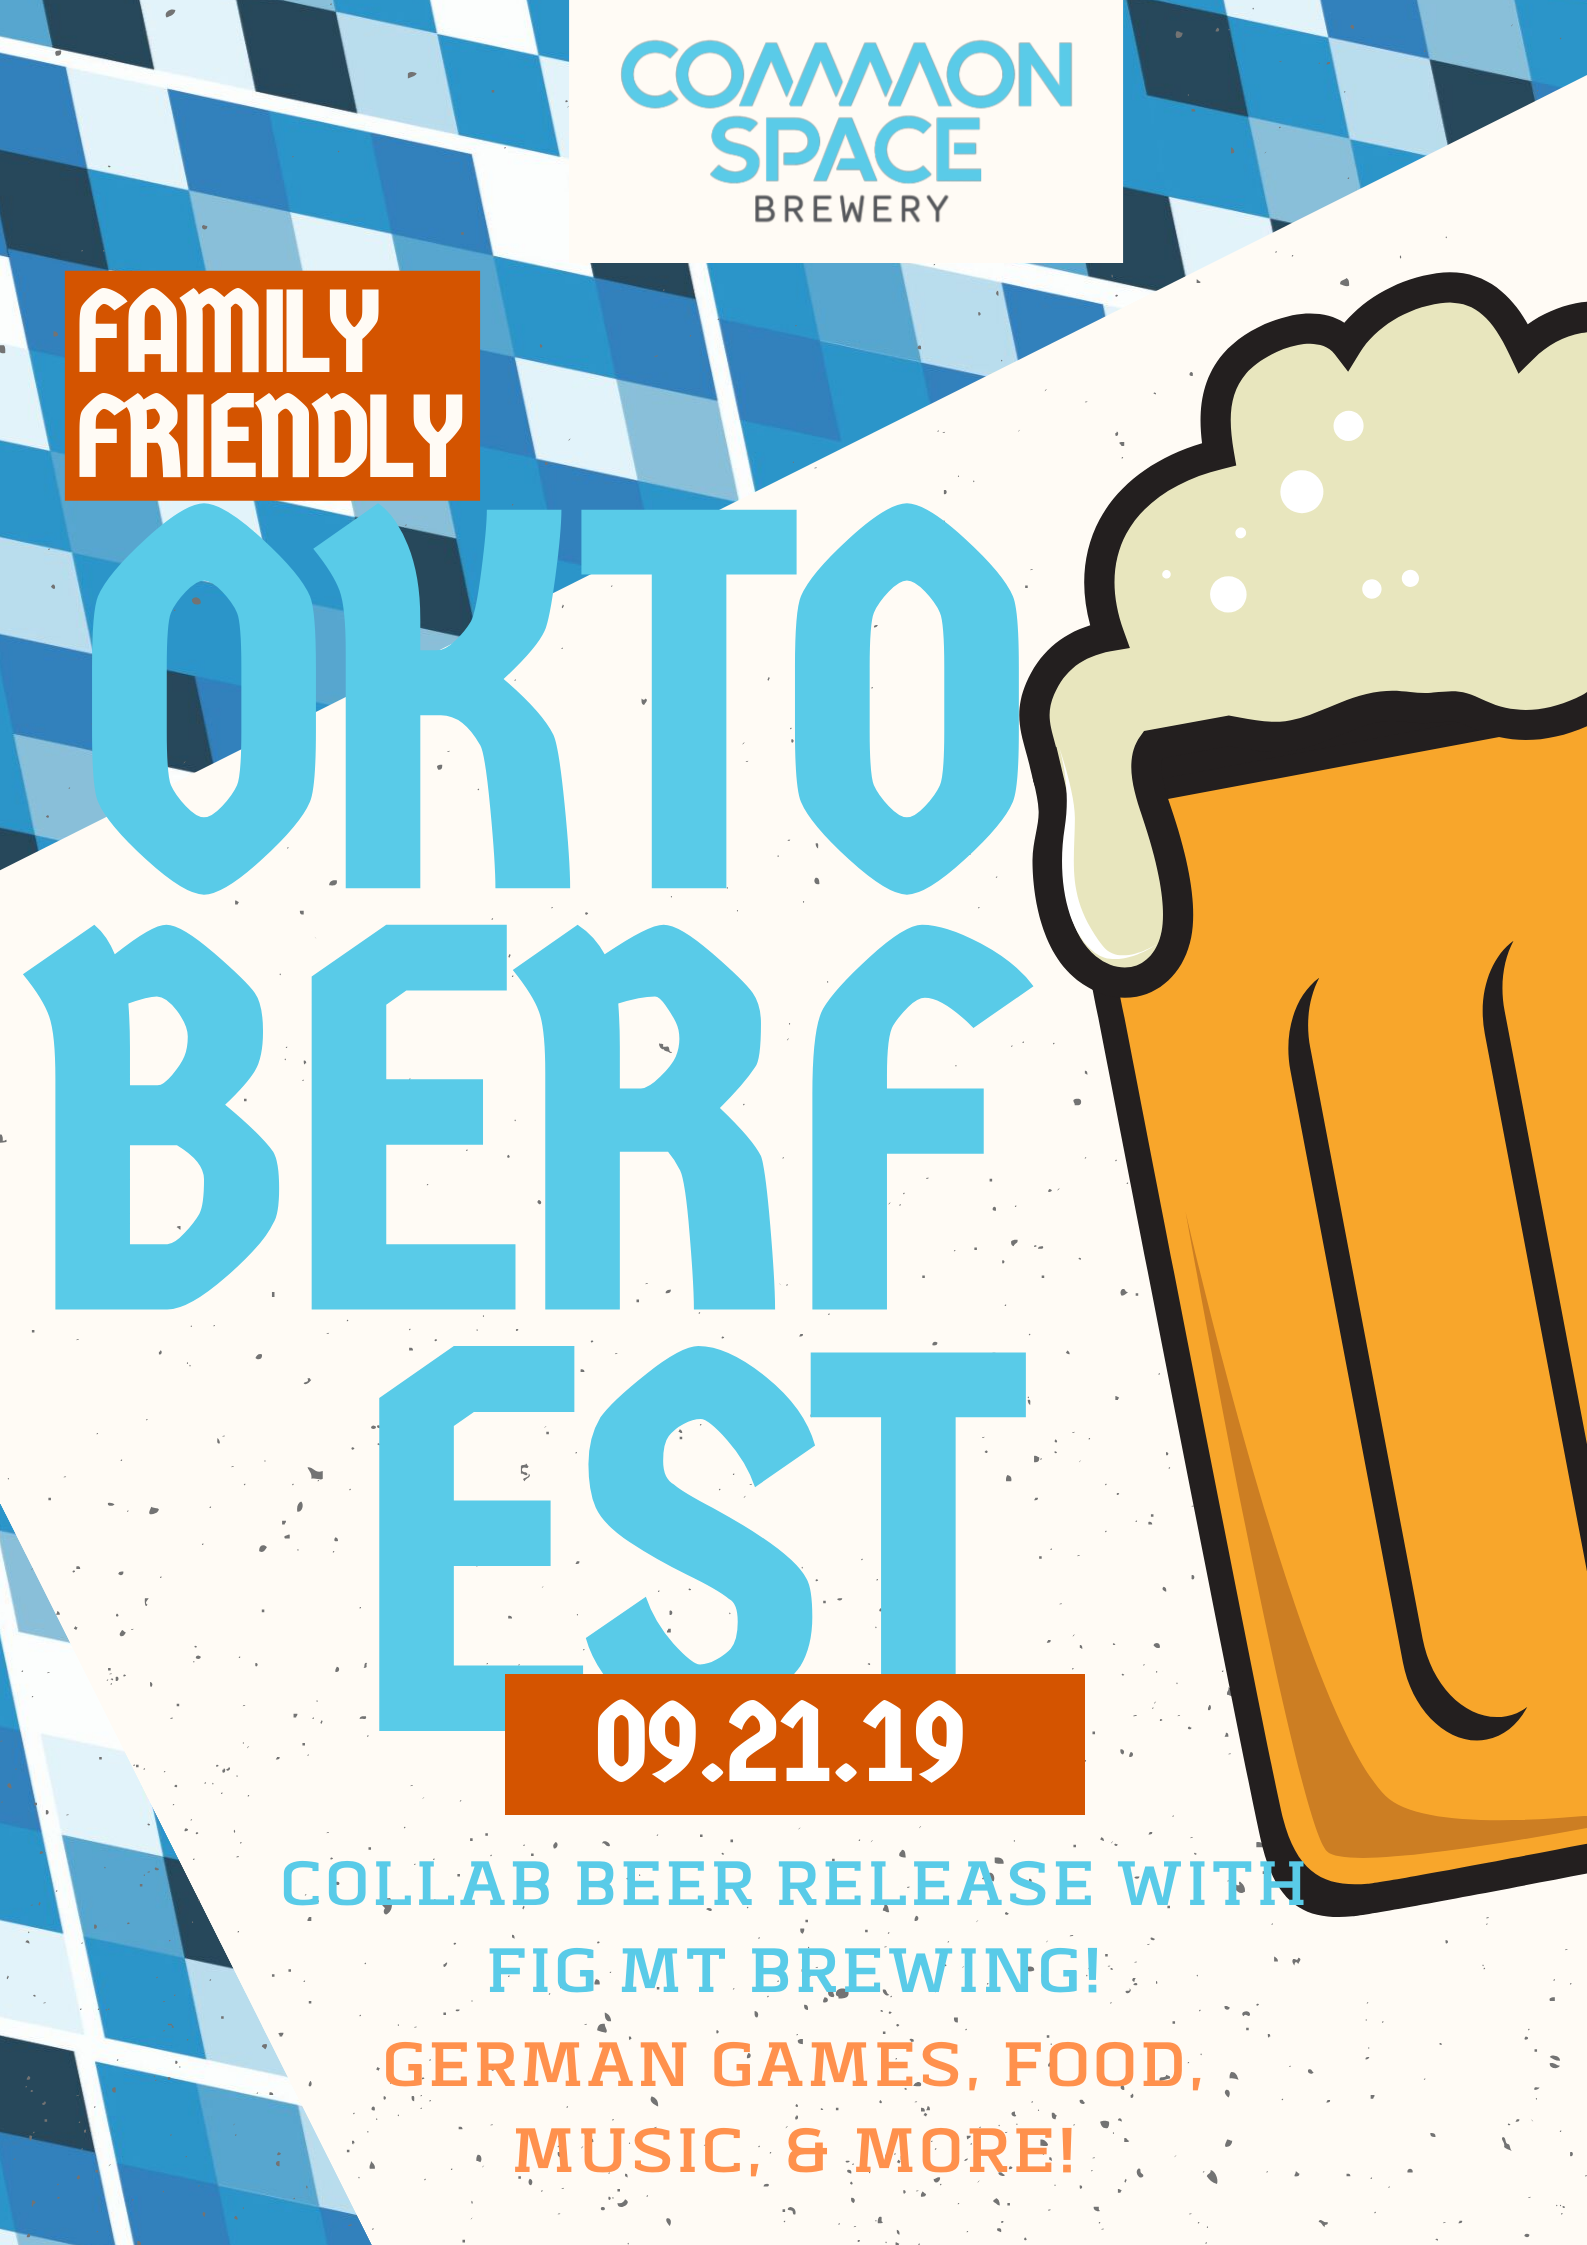 common-space-brewery-los-angeles-beer-events-oktoberfest